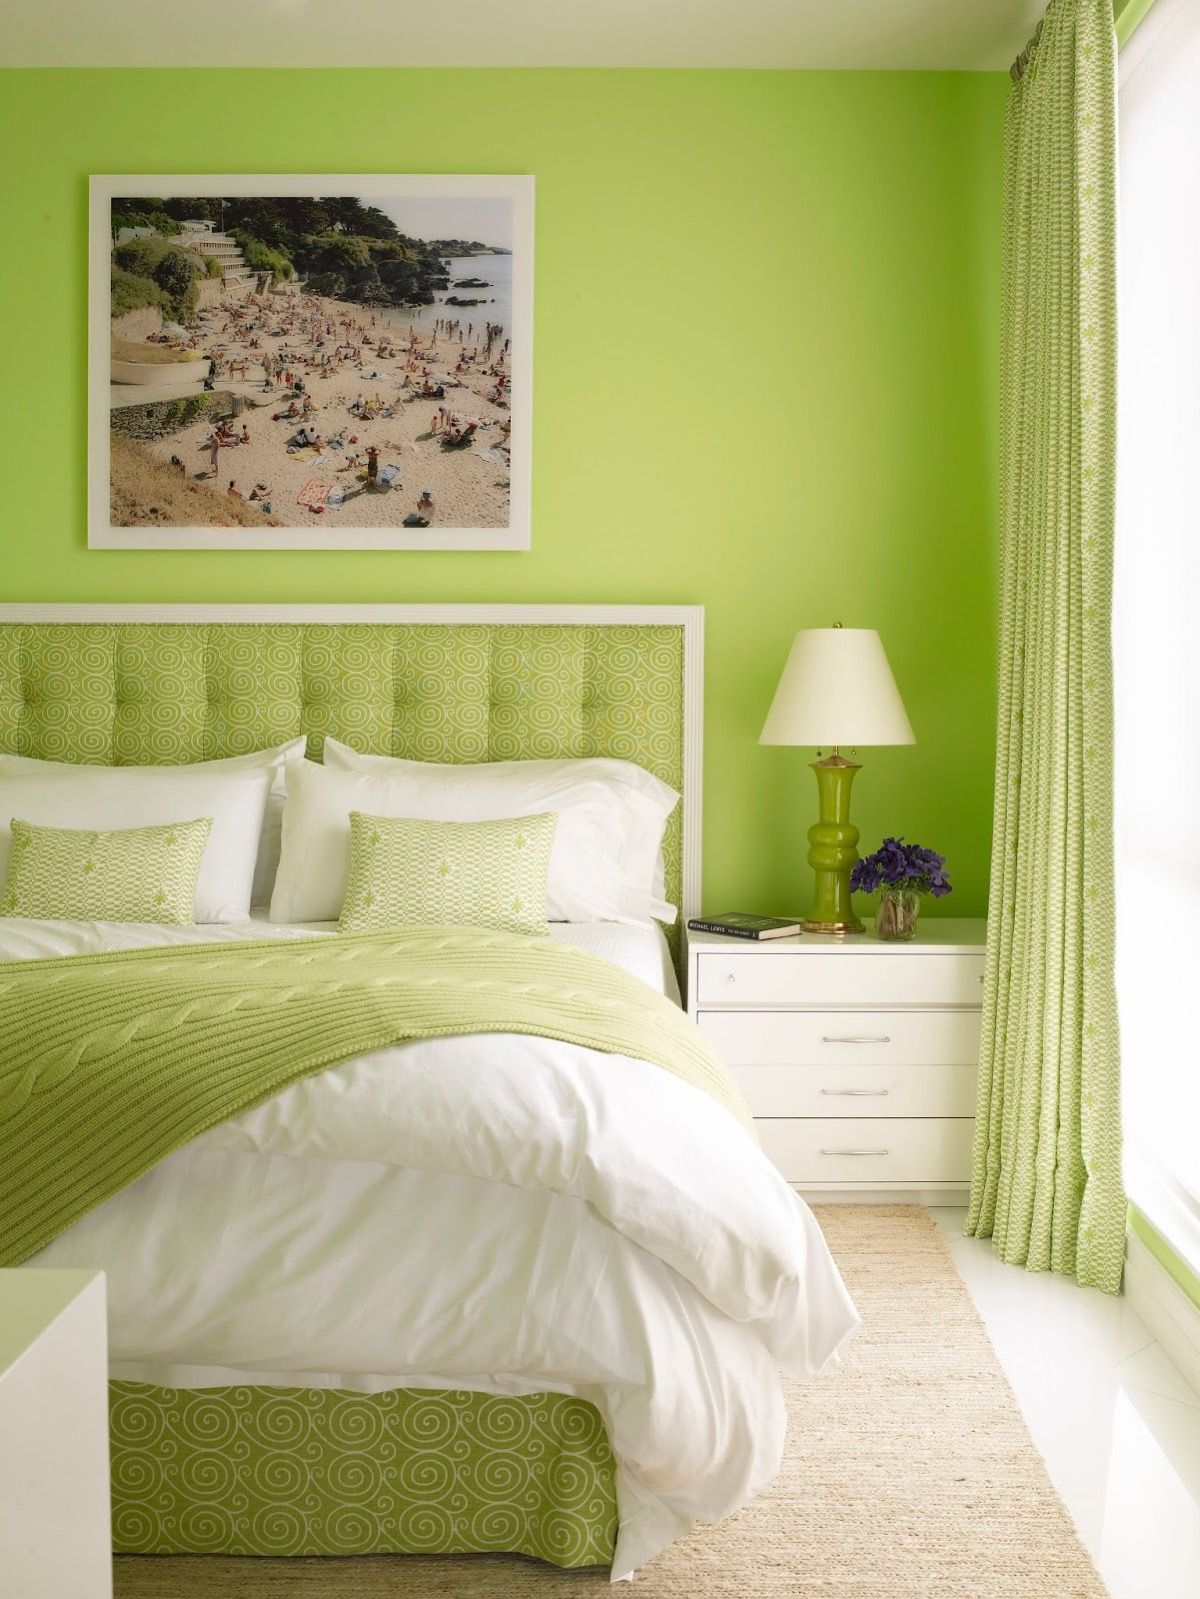 51 Green Bedrooms With Tips And Accessories To Help You Design Yours In 2020 Lime Green Bedrooms Green Bedroom Decor Green Bedroom Walls